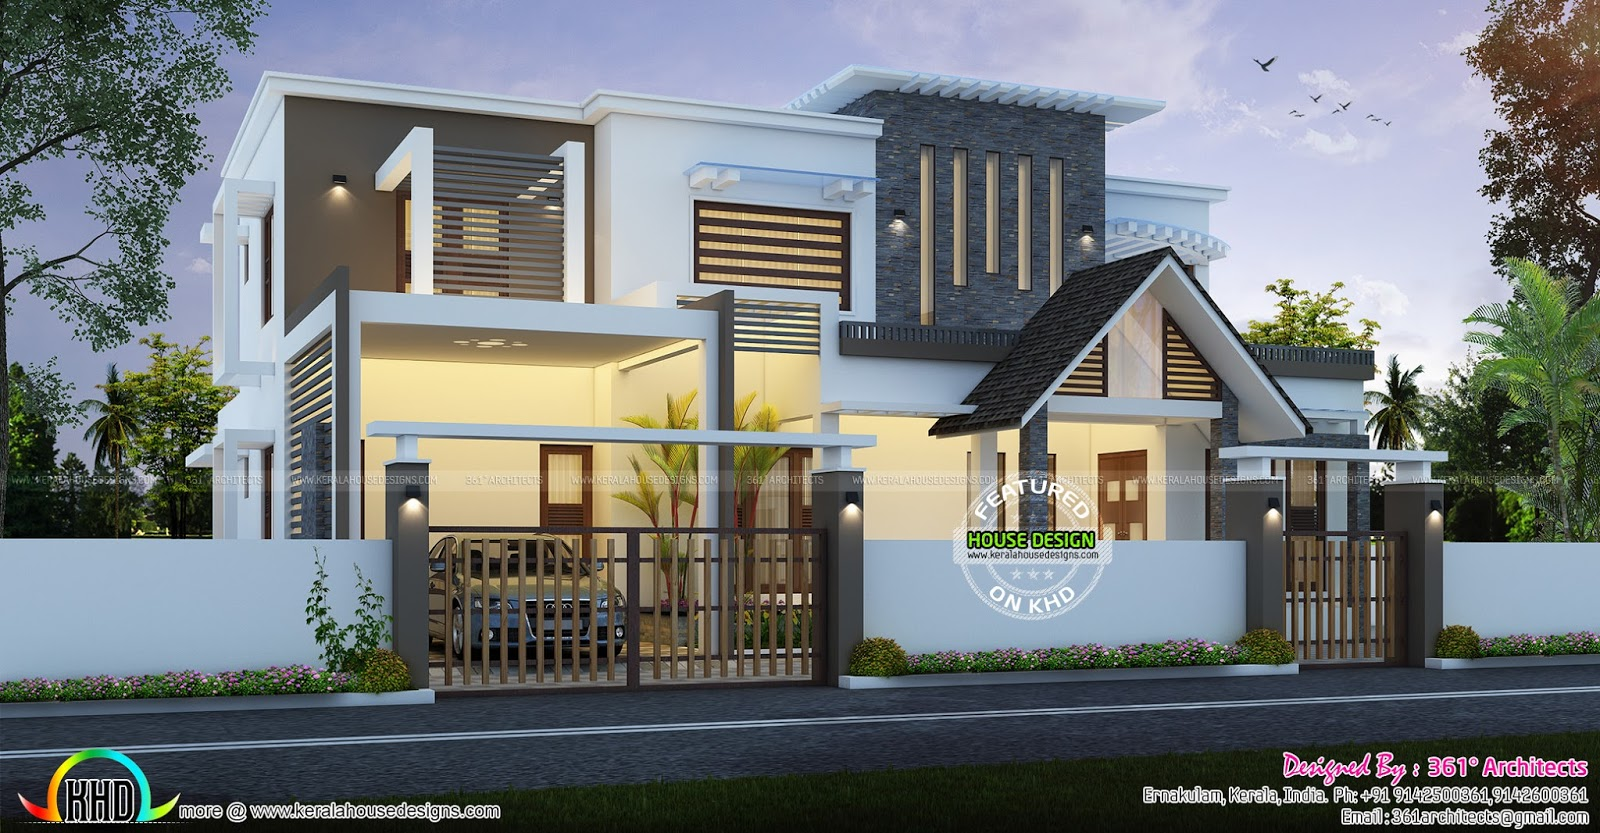 House design european - European House Designs In Kerala